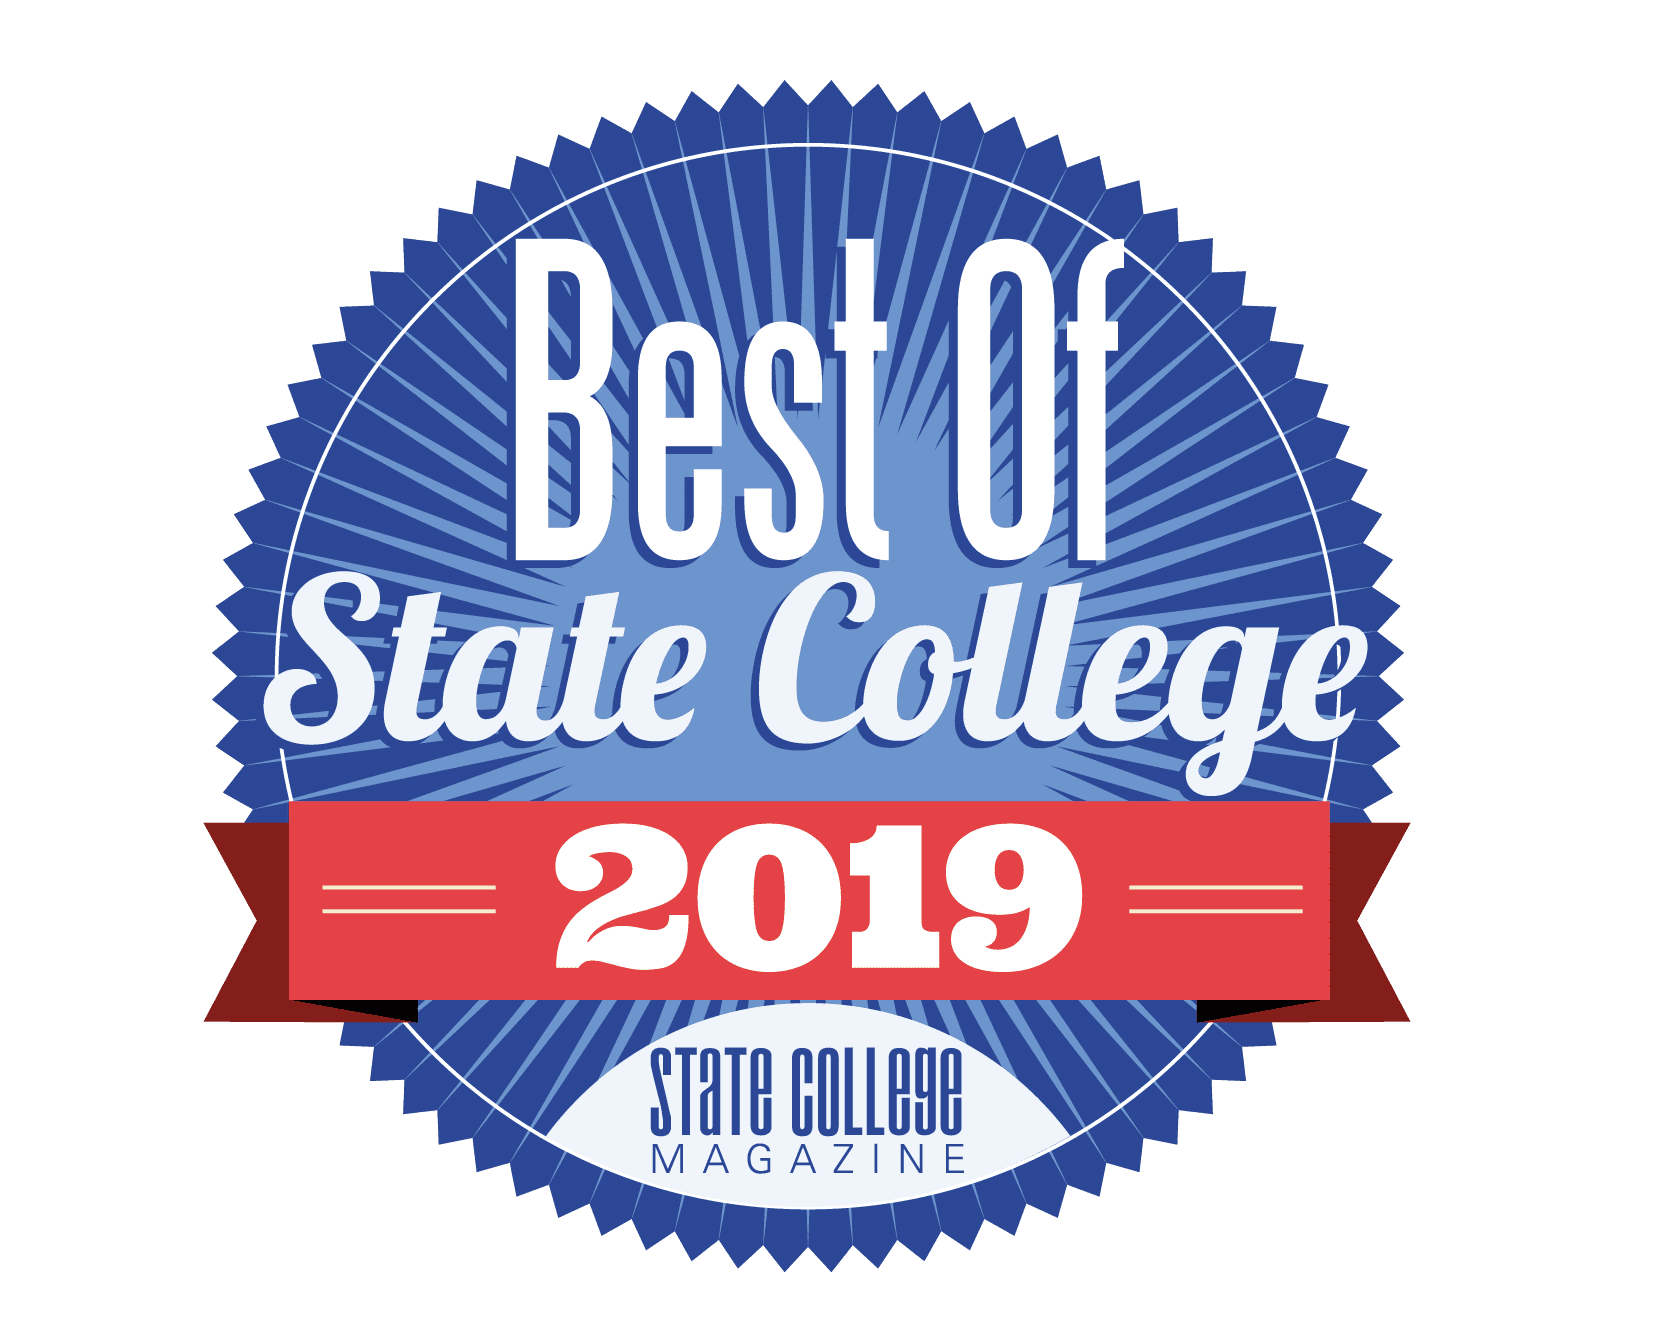 Best of state college 2019